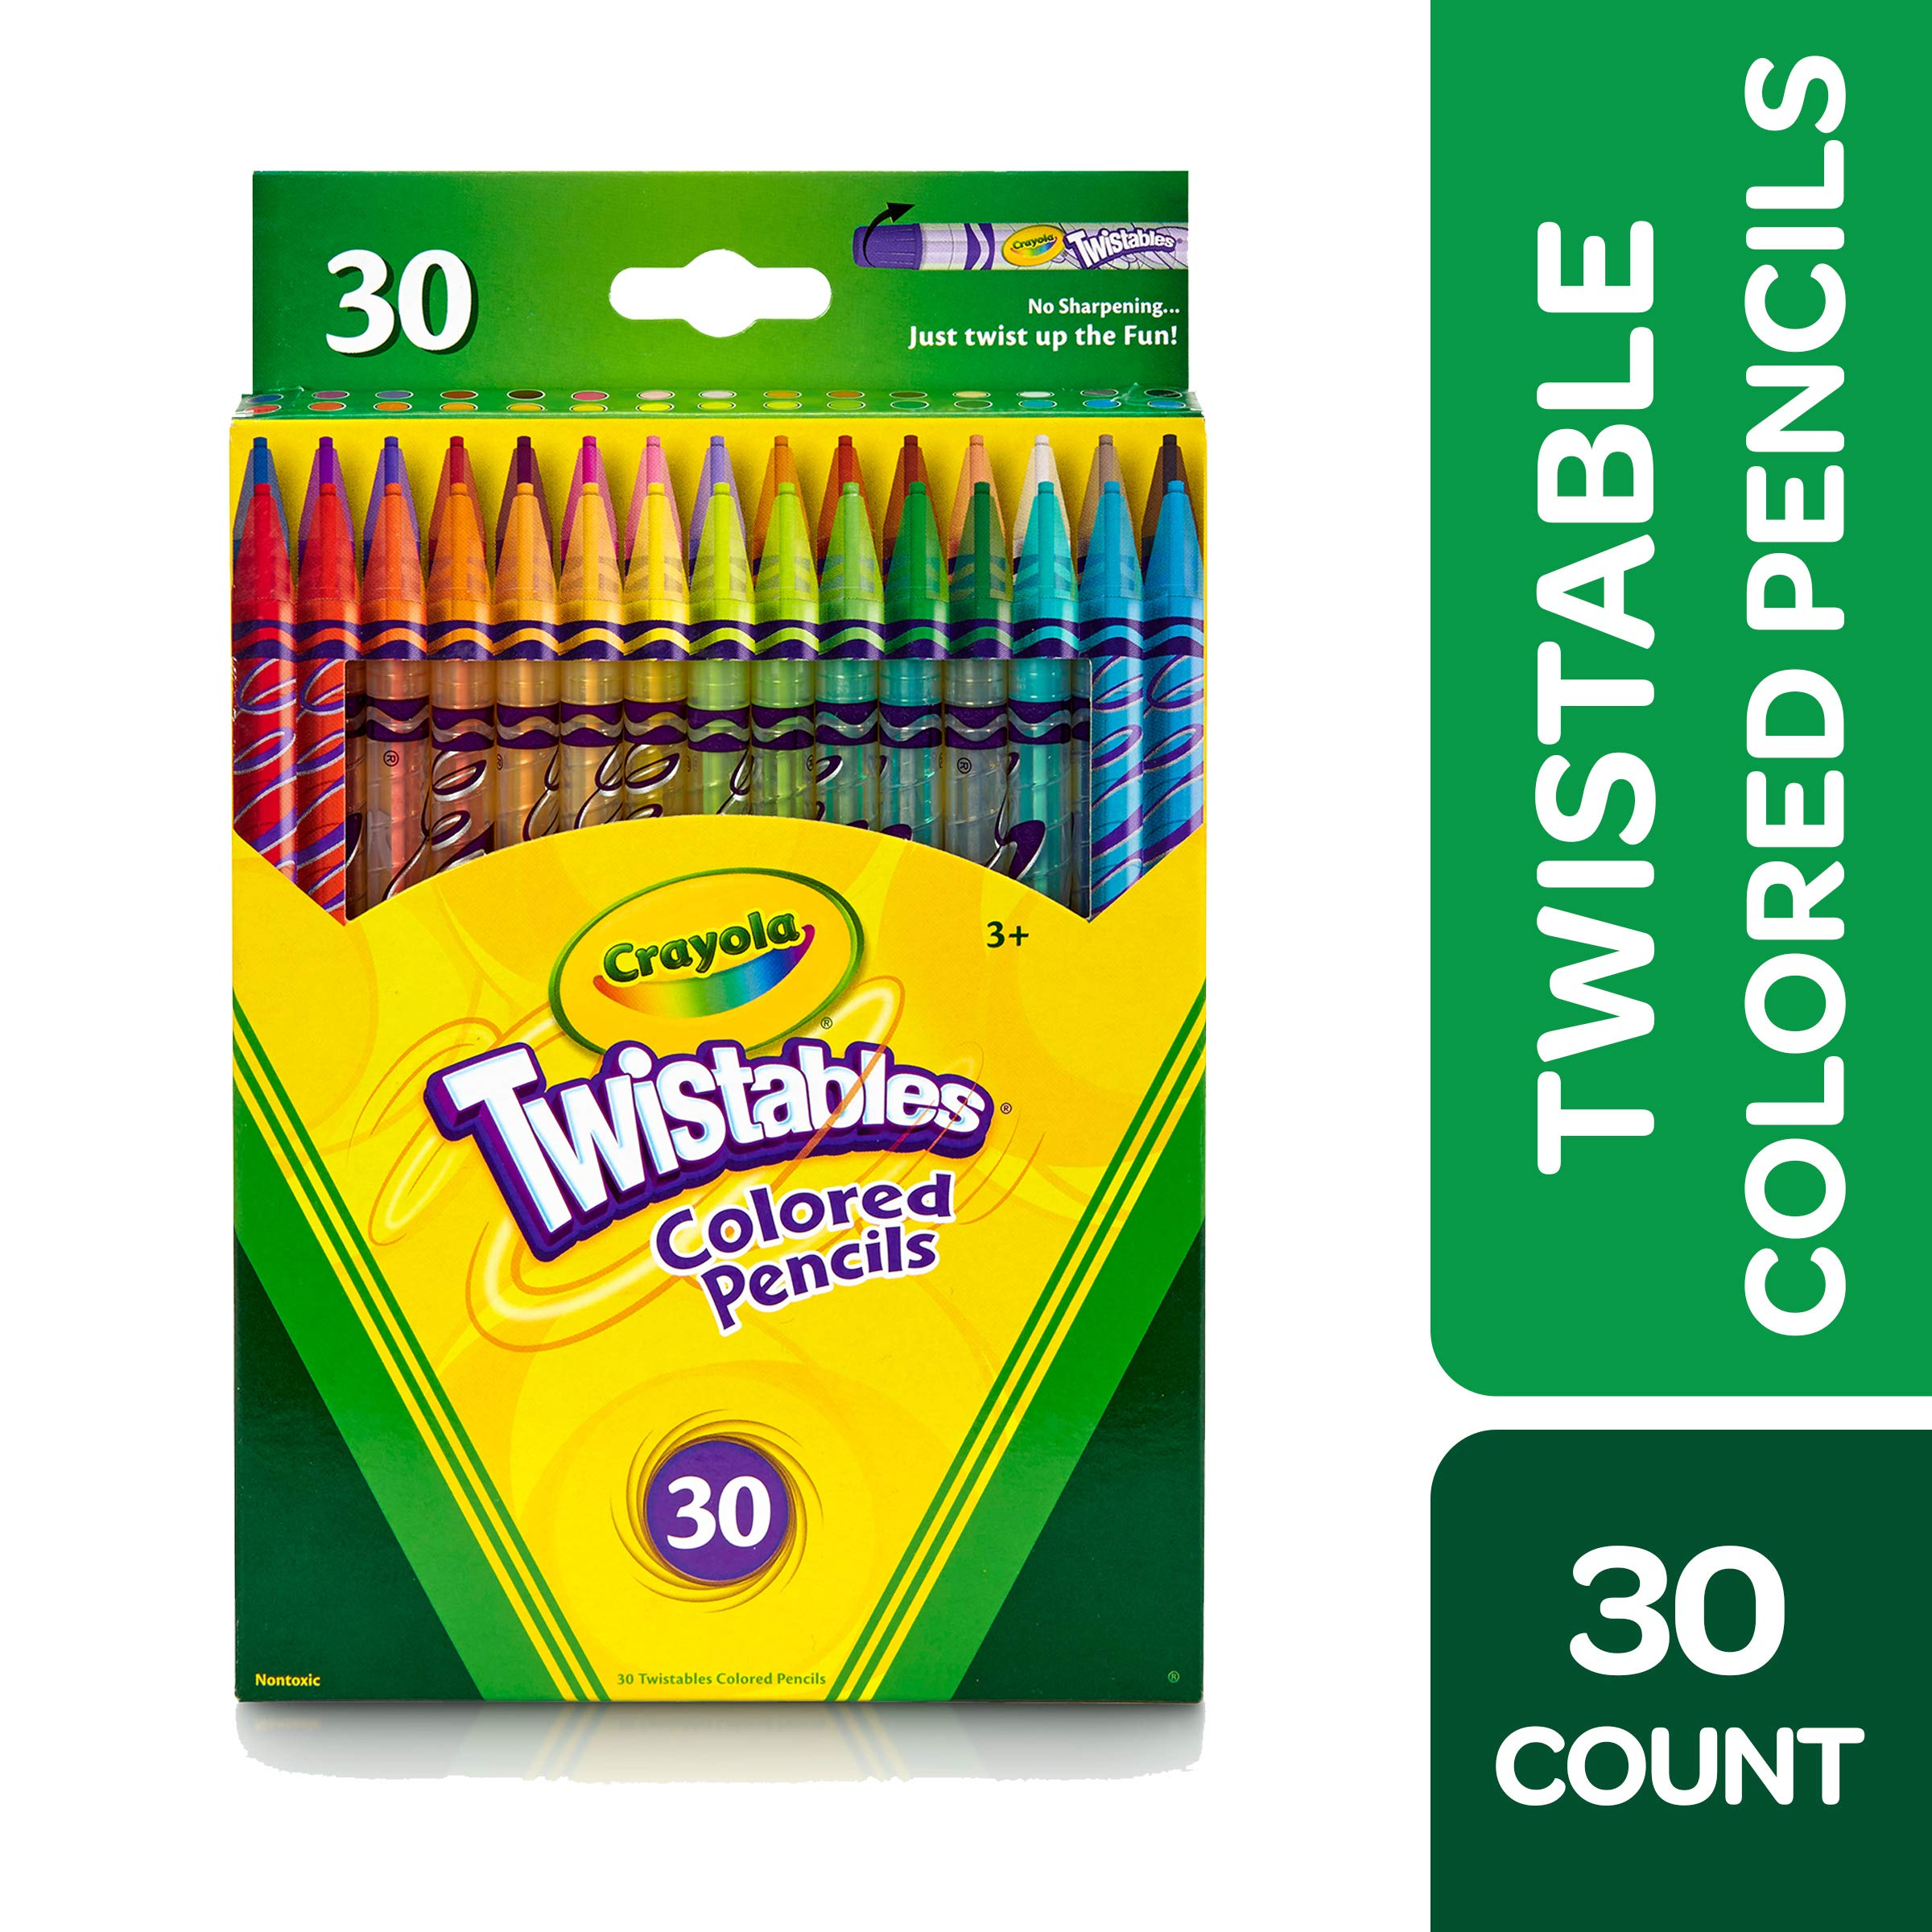 Crayola Twistable Colored Pencils Crayola Ultra-Clean Washable Broad Line Markers 40 Classic Colors 30 Count Includes 5 Color Flag Set